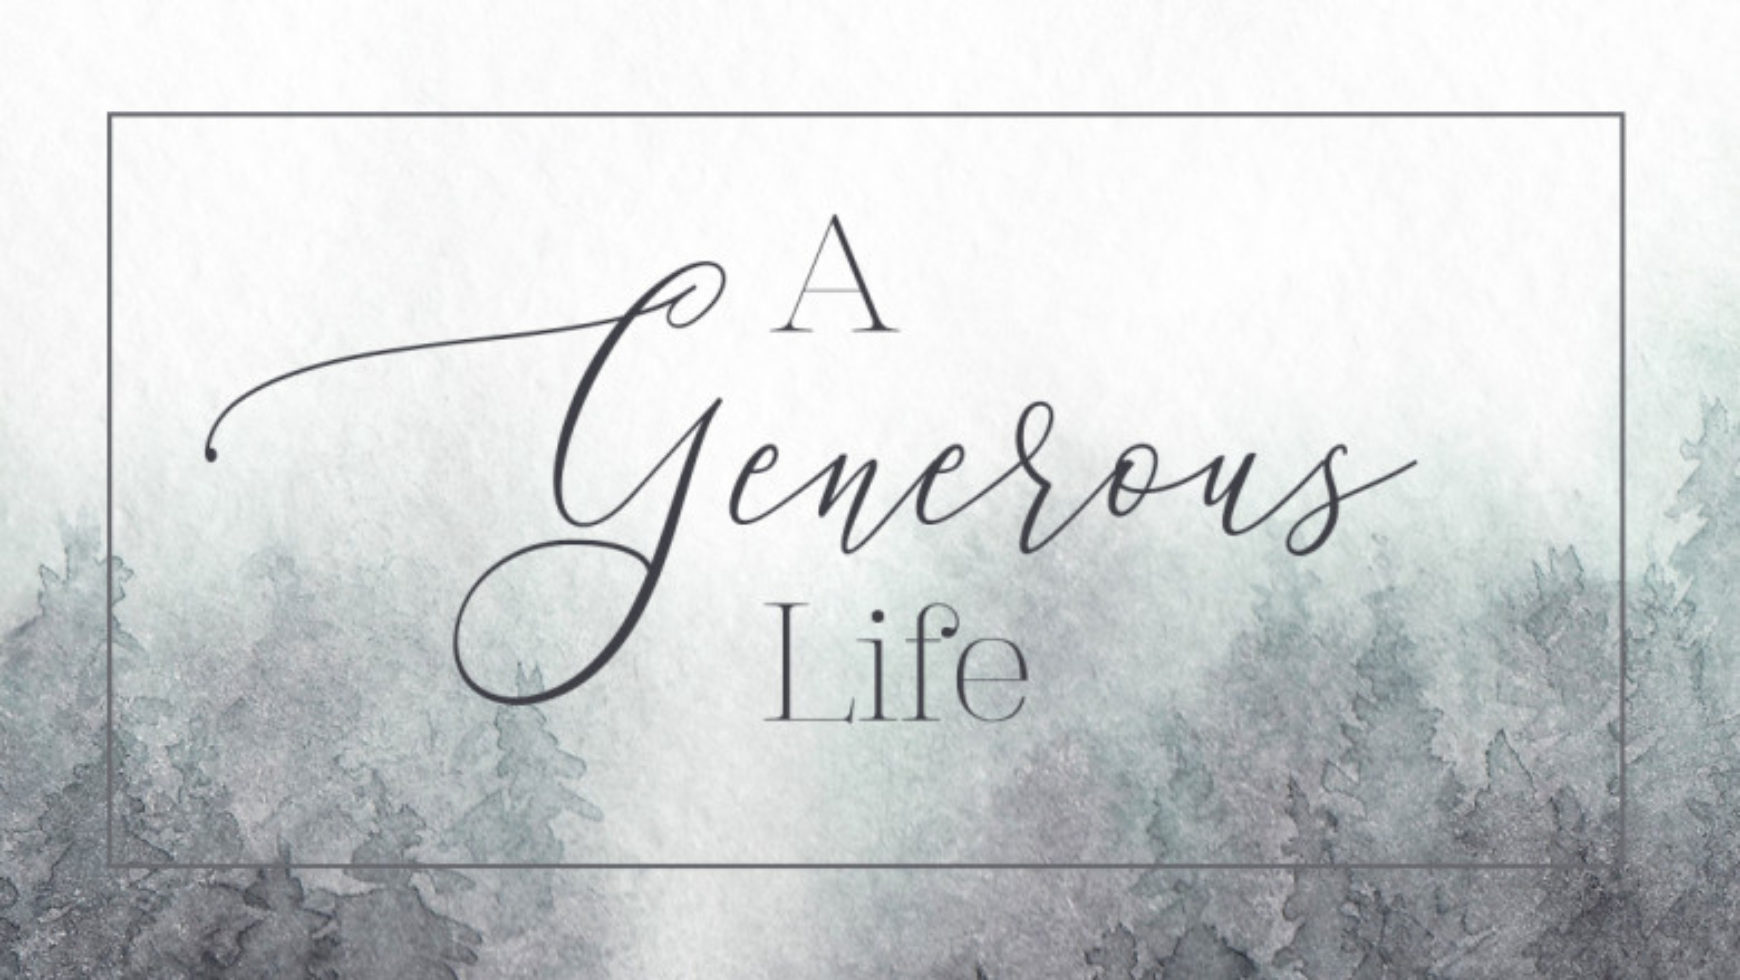 Grace and Generosity